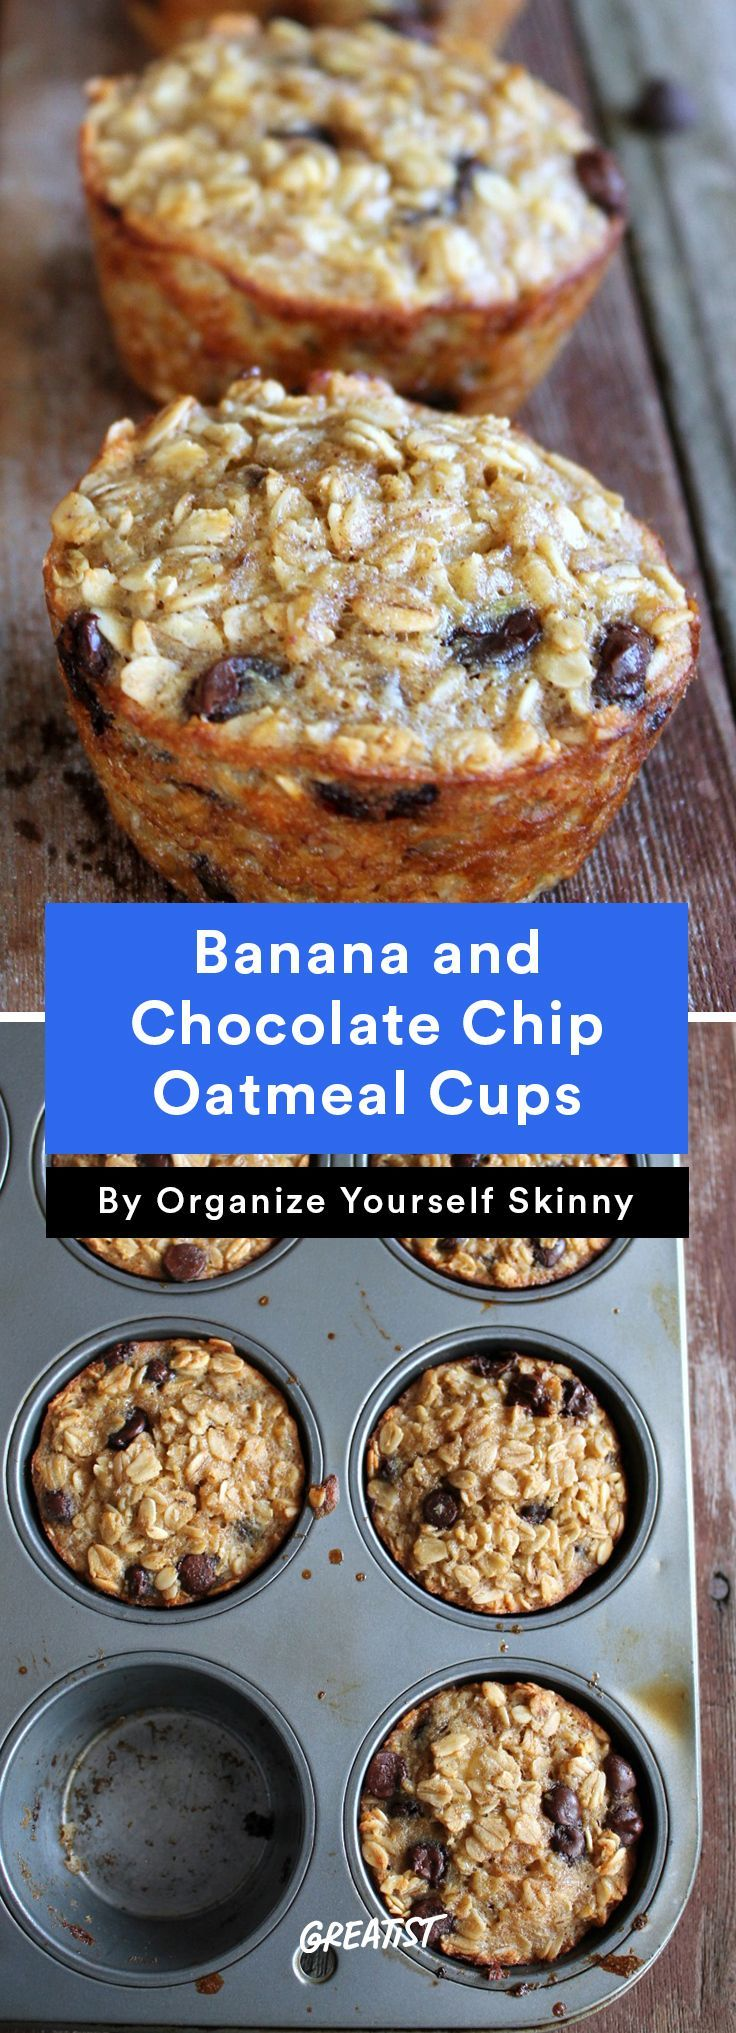 Banana And Chocolate Chip Oatmeal Cups #healthy #breakfast #recipes Http: